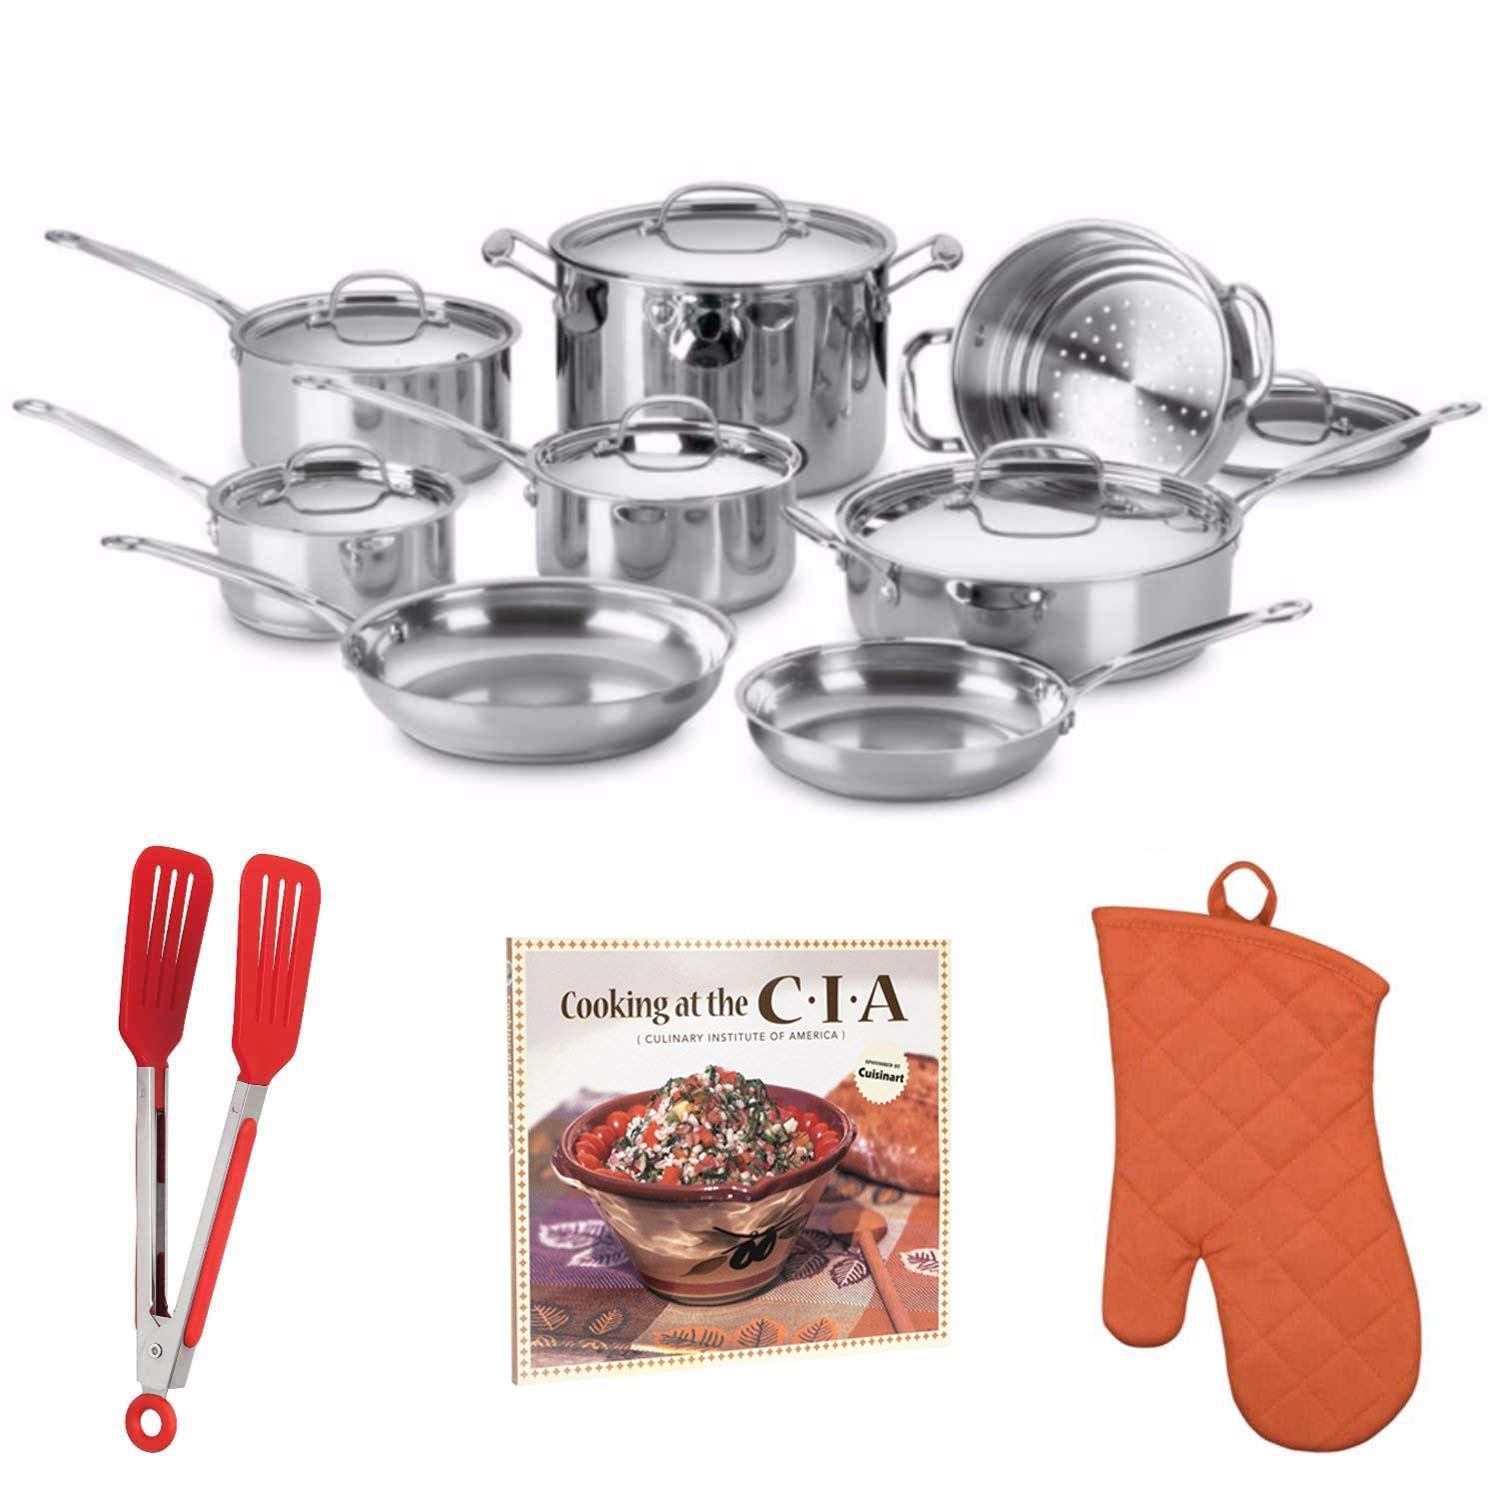 """Cuisinart 77-14N Chef's Classic Stainless 14-Piece Set, Stainless Steel Includes 8"""" Flipper Tongs, Oven Mitt and Cookbook"""